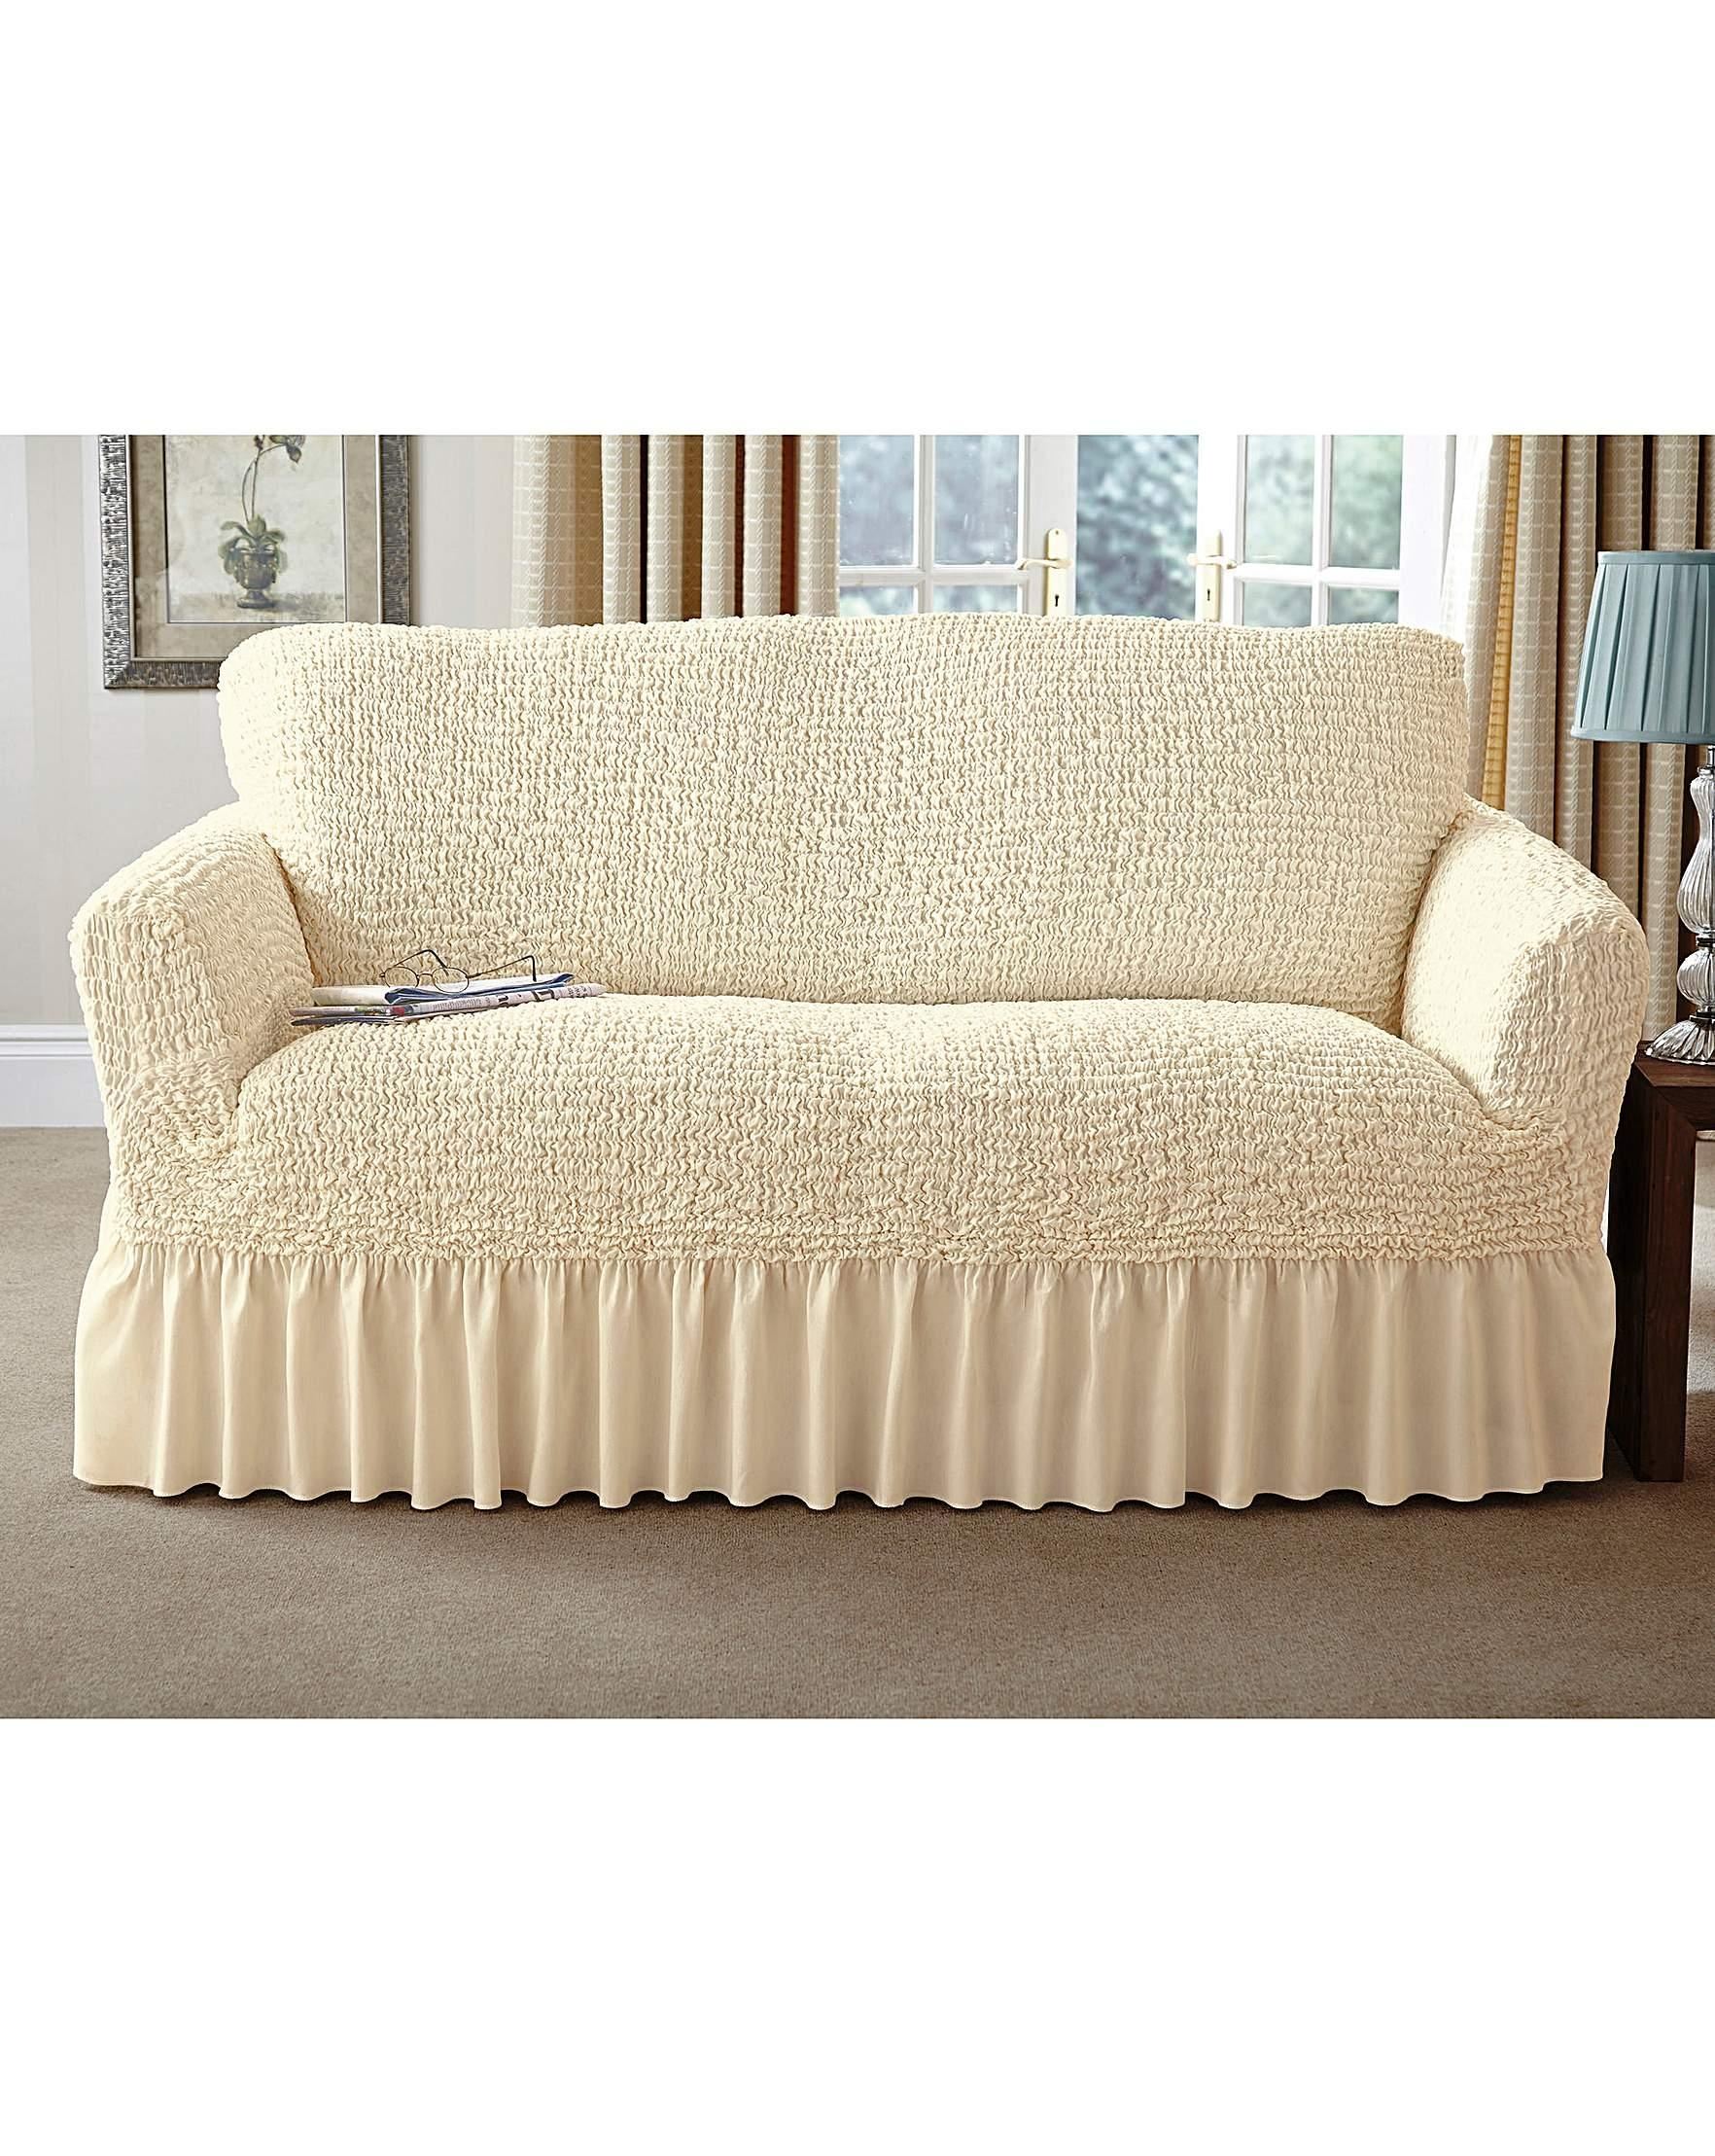 Couch And Chair Covers Loose Covers For Sofas Sofa Design Removable Cover Modern